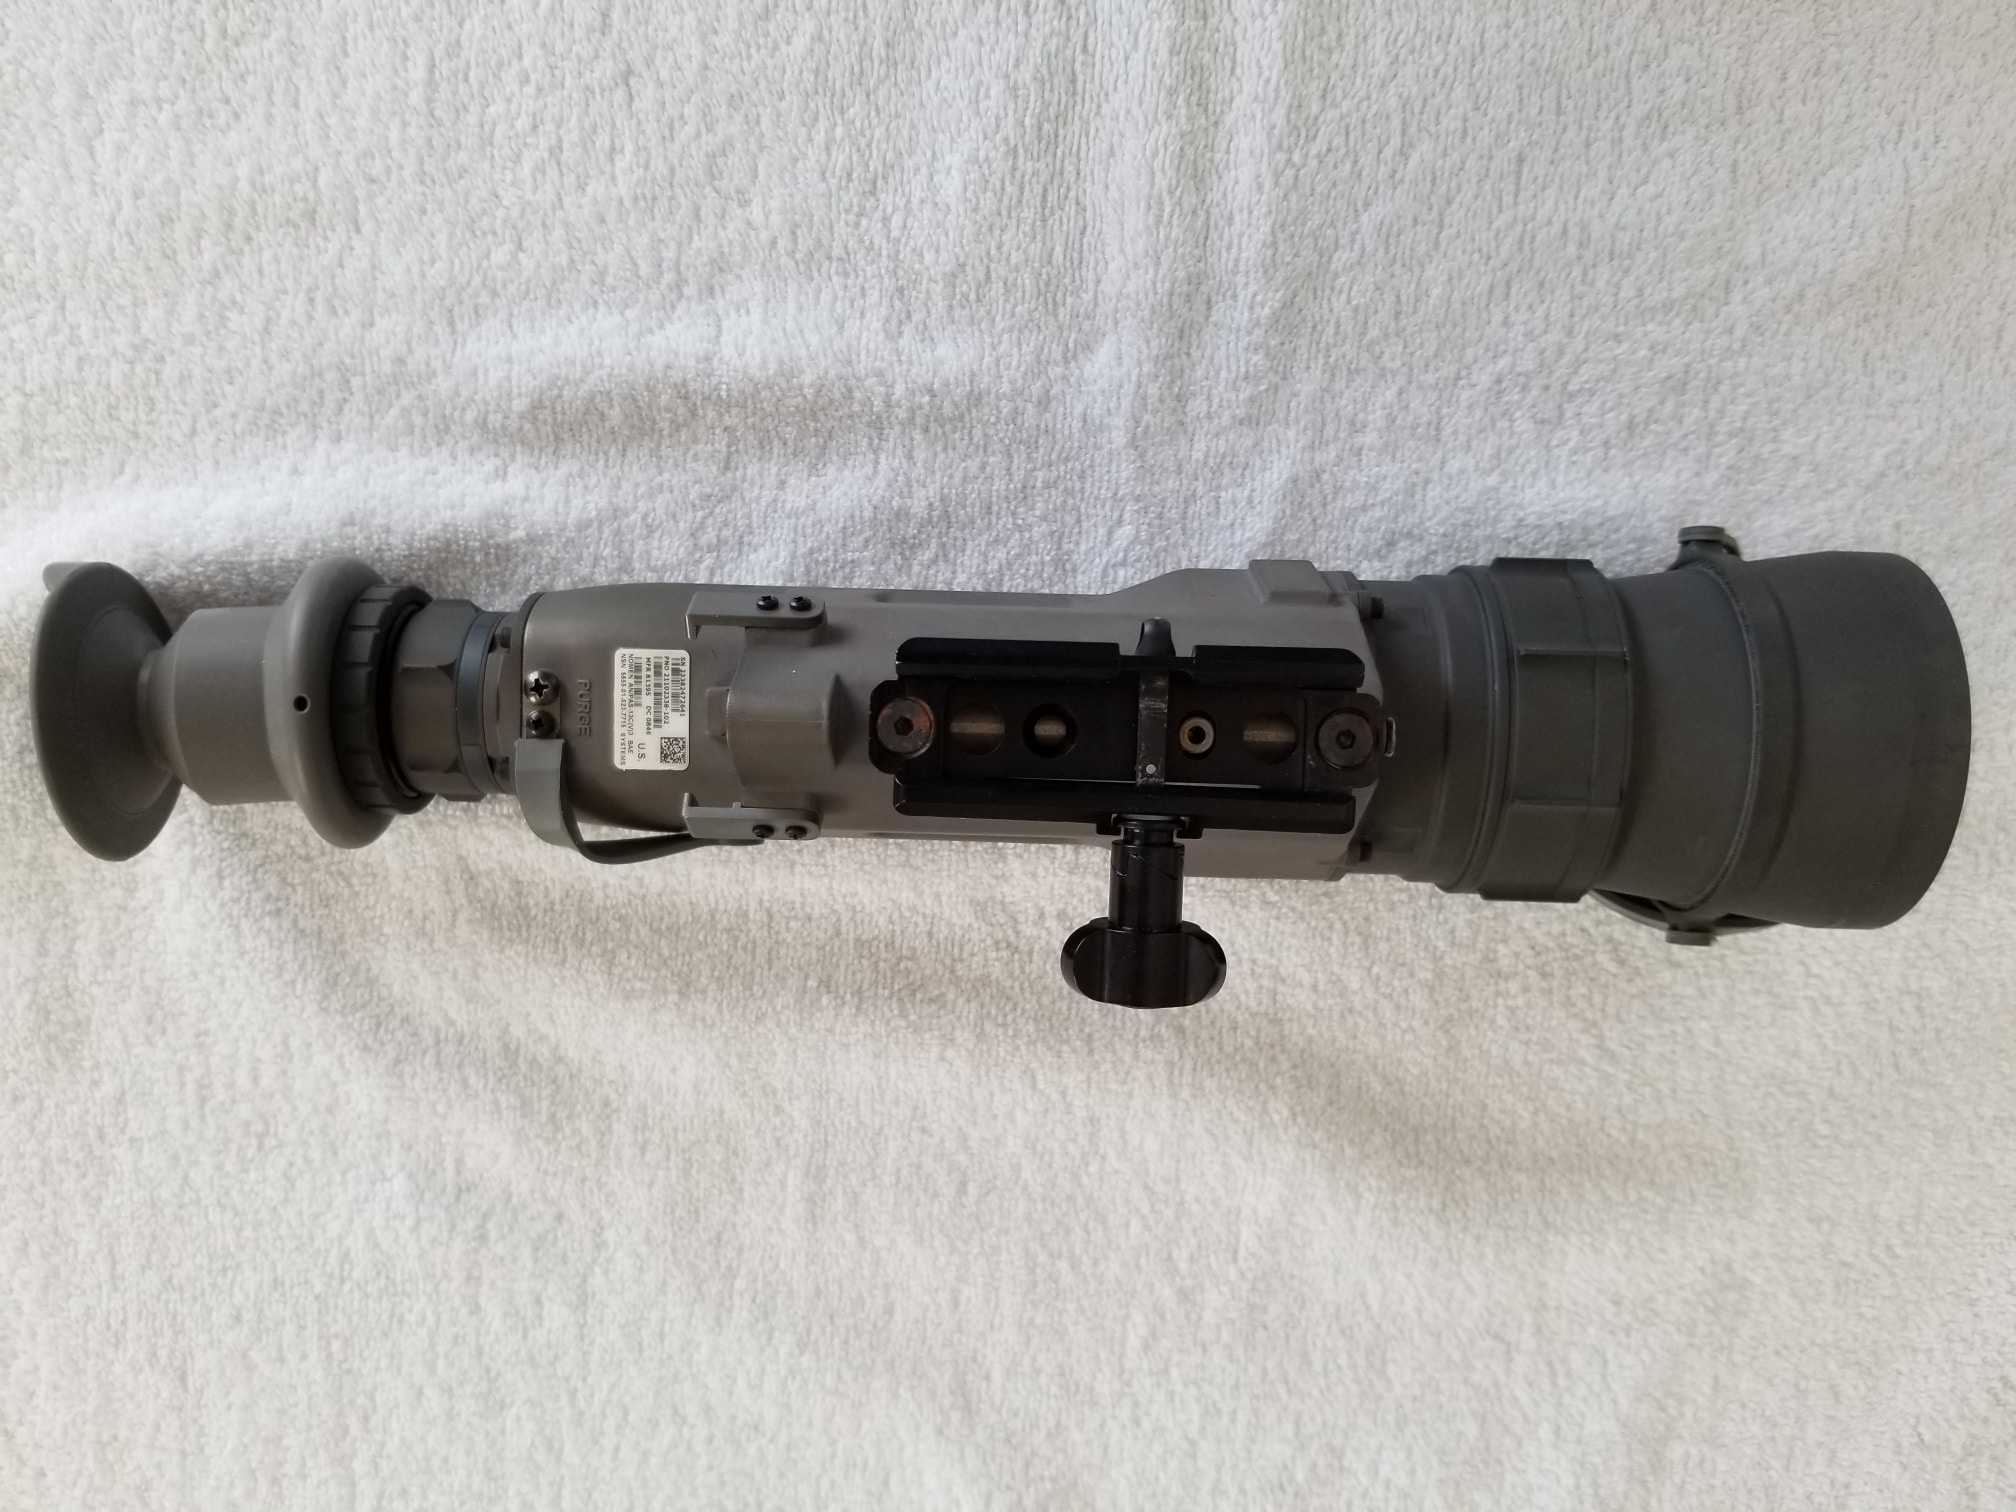 BAE Systems: AN/PAS-13C(V)3 640x480 Heavy Thermal - Will's Optics